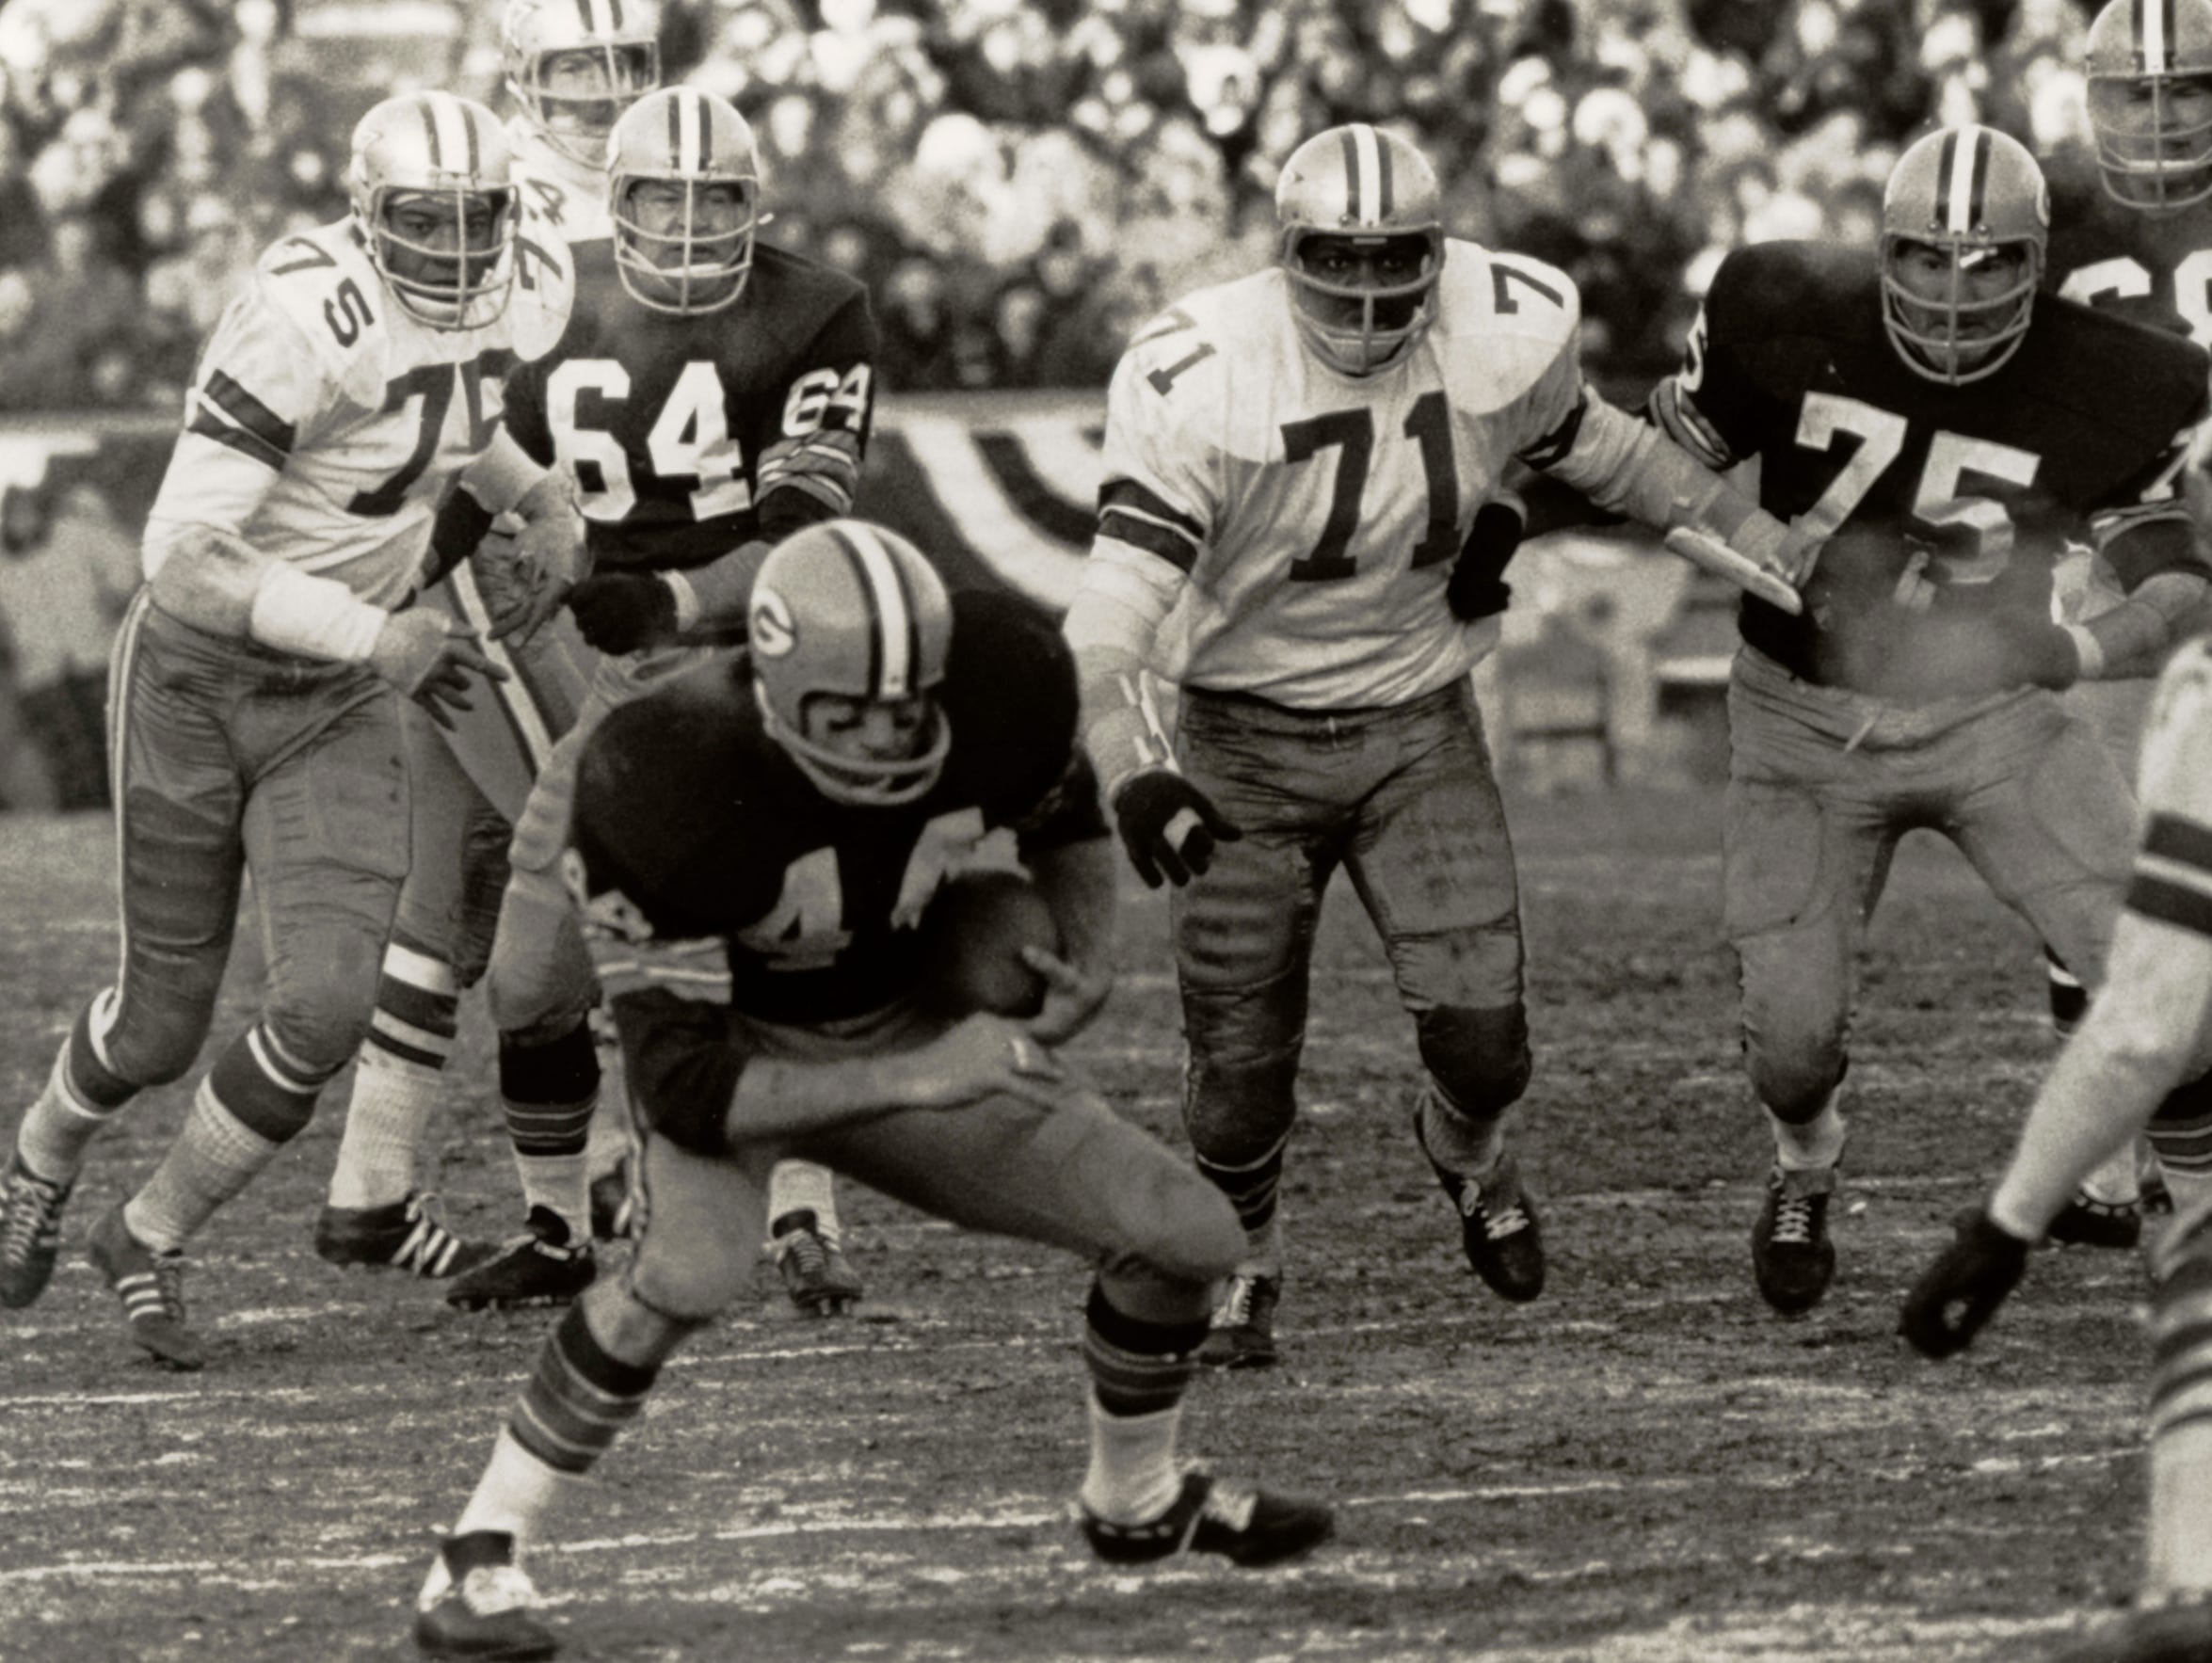 Packers halfback Donny Anderson runs for yardage during the 1967 NFL Championship Game. Anderson rushed 18 times for 35 yards and caught four passes for 44 yards in the game.